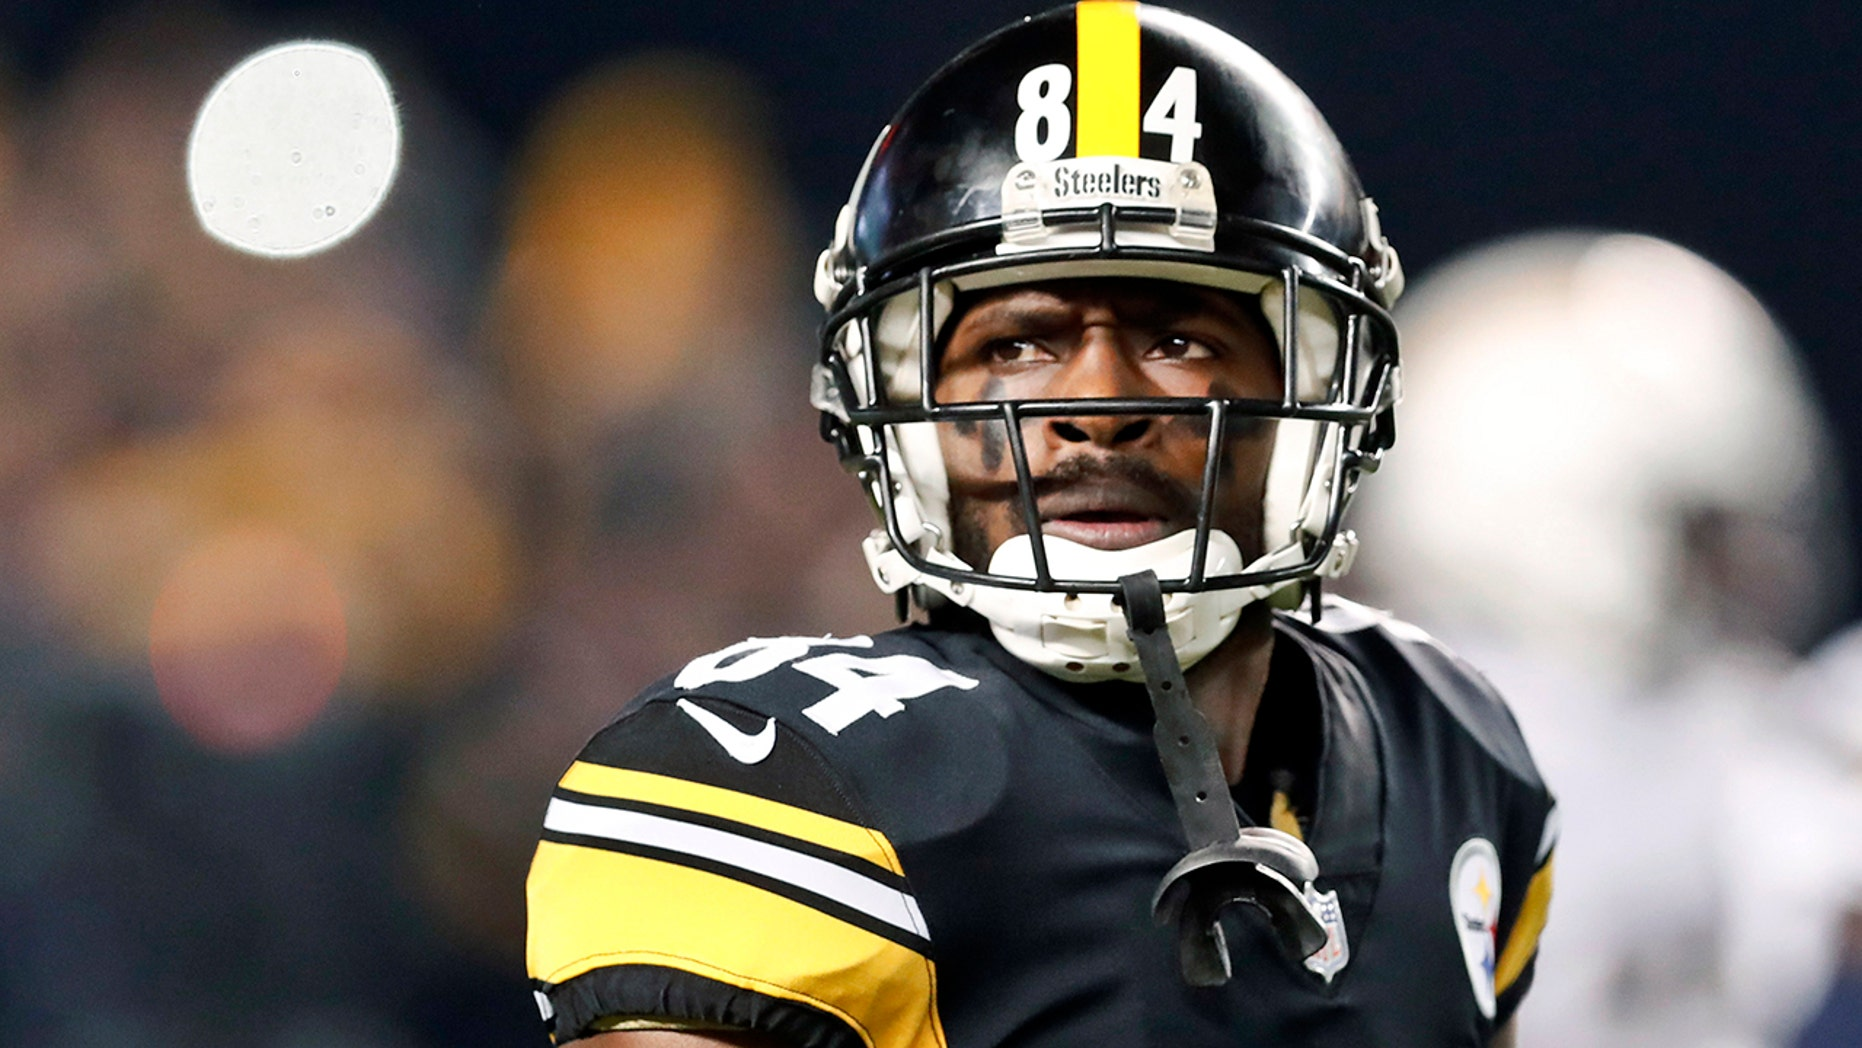 eed5cbfe8ad Pittsburgh Steelers wide receiver Antonio Brown (84) plays against the Los  Angeles Chargers in